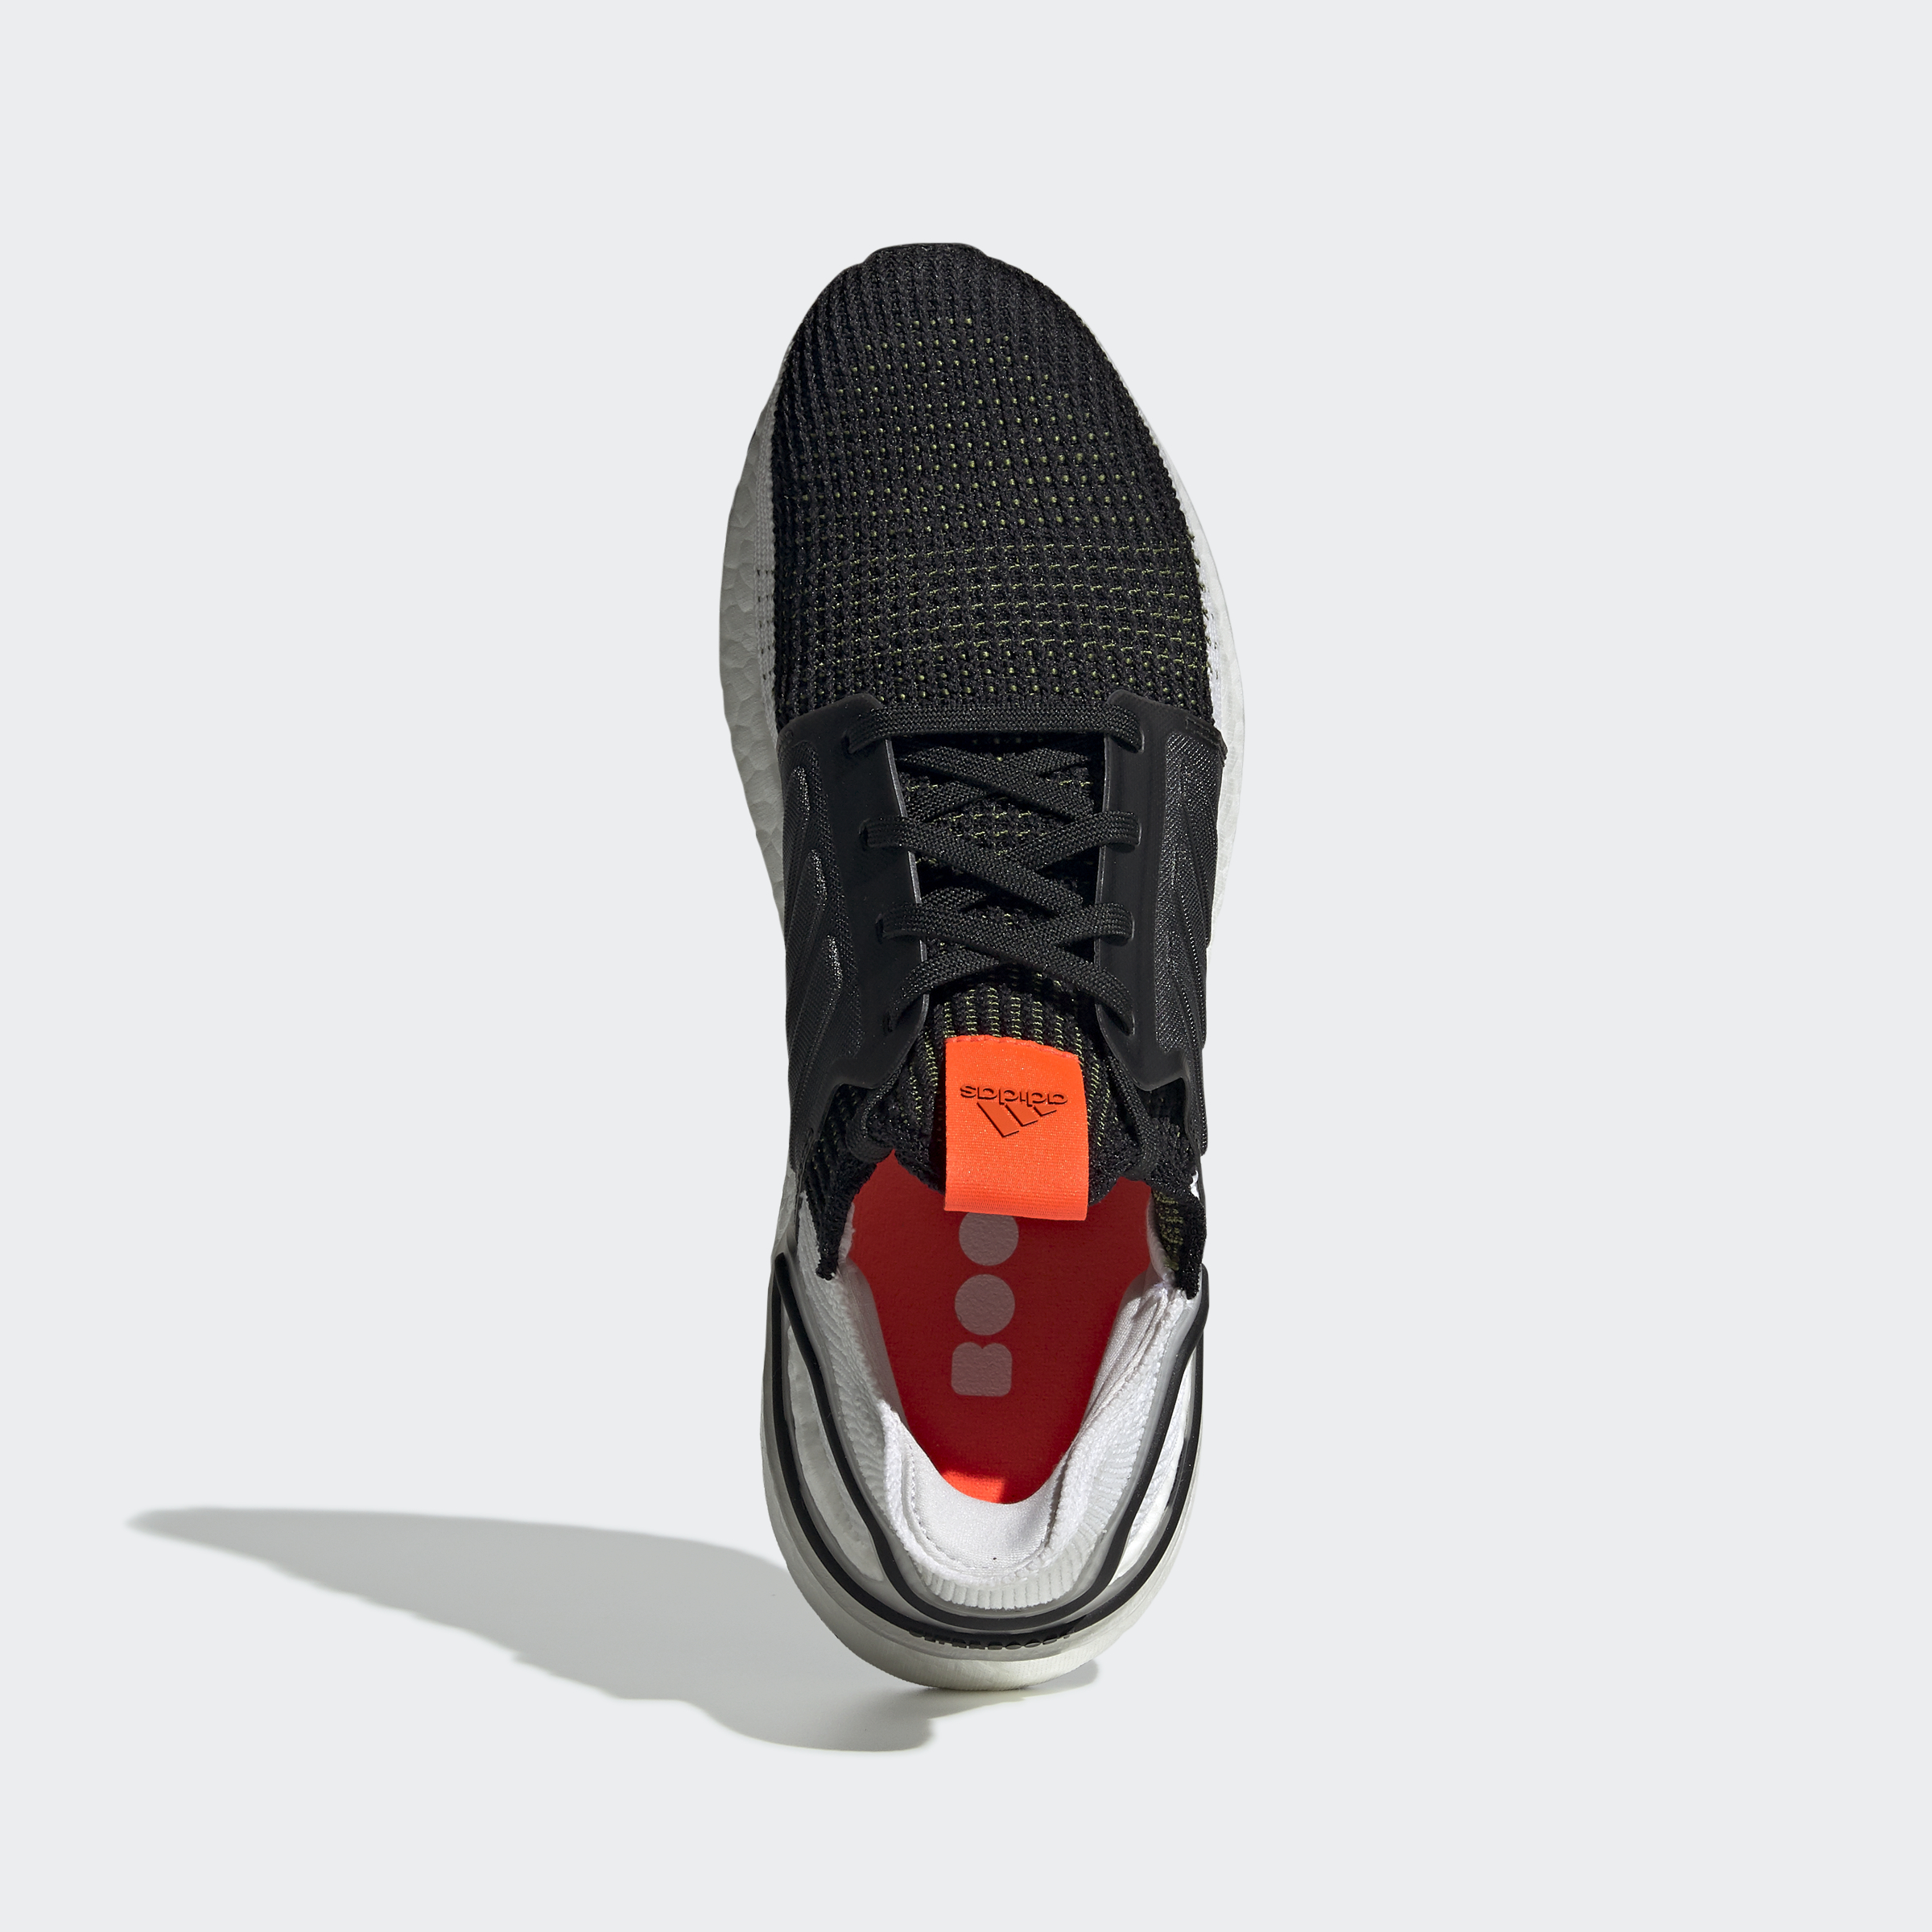 adidas-Ultraboost-19-Shoes-Athletic-amp-Sneakers thumbnail 62